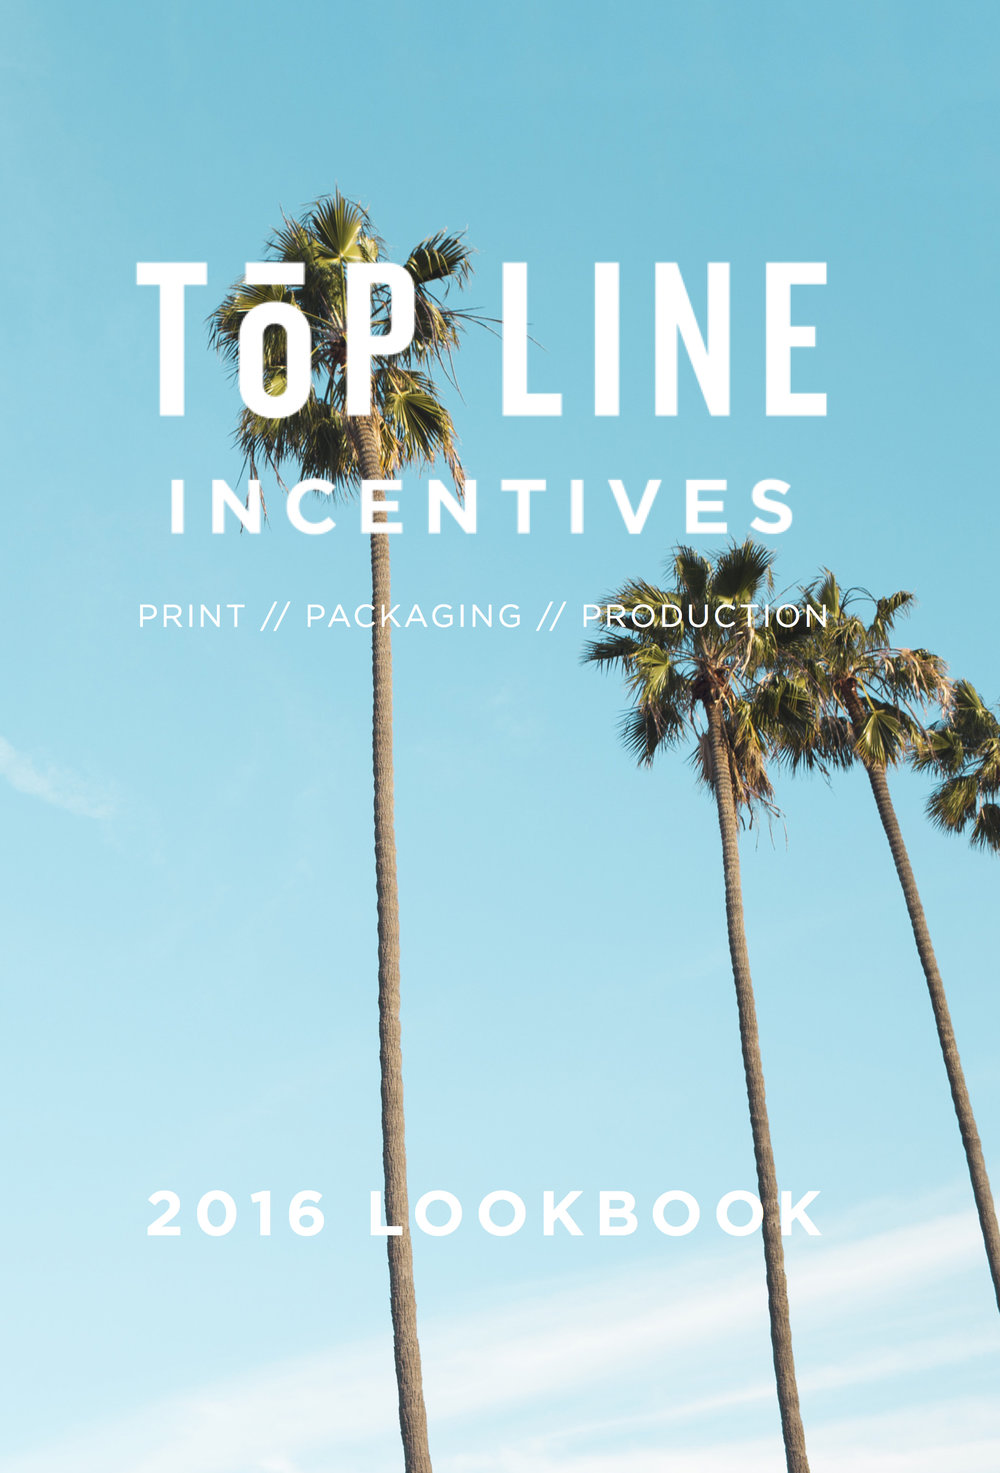 Top Line Incentives Lookbook (also designed)